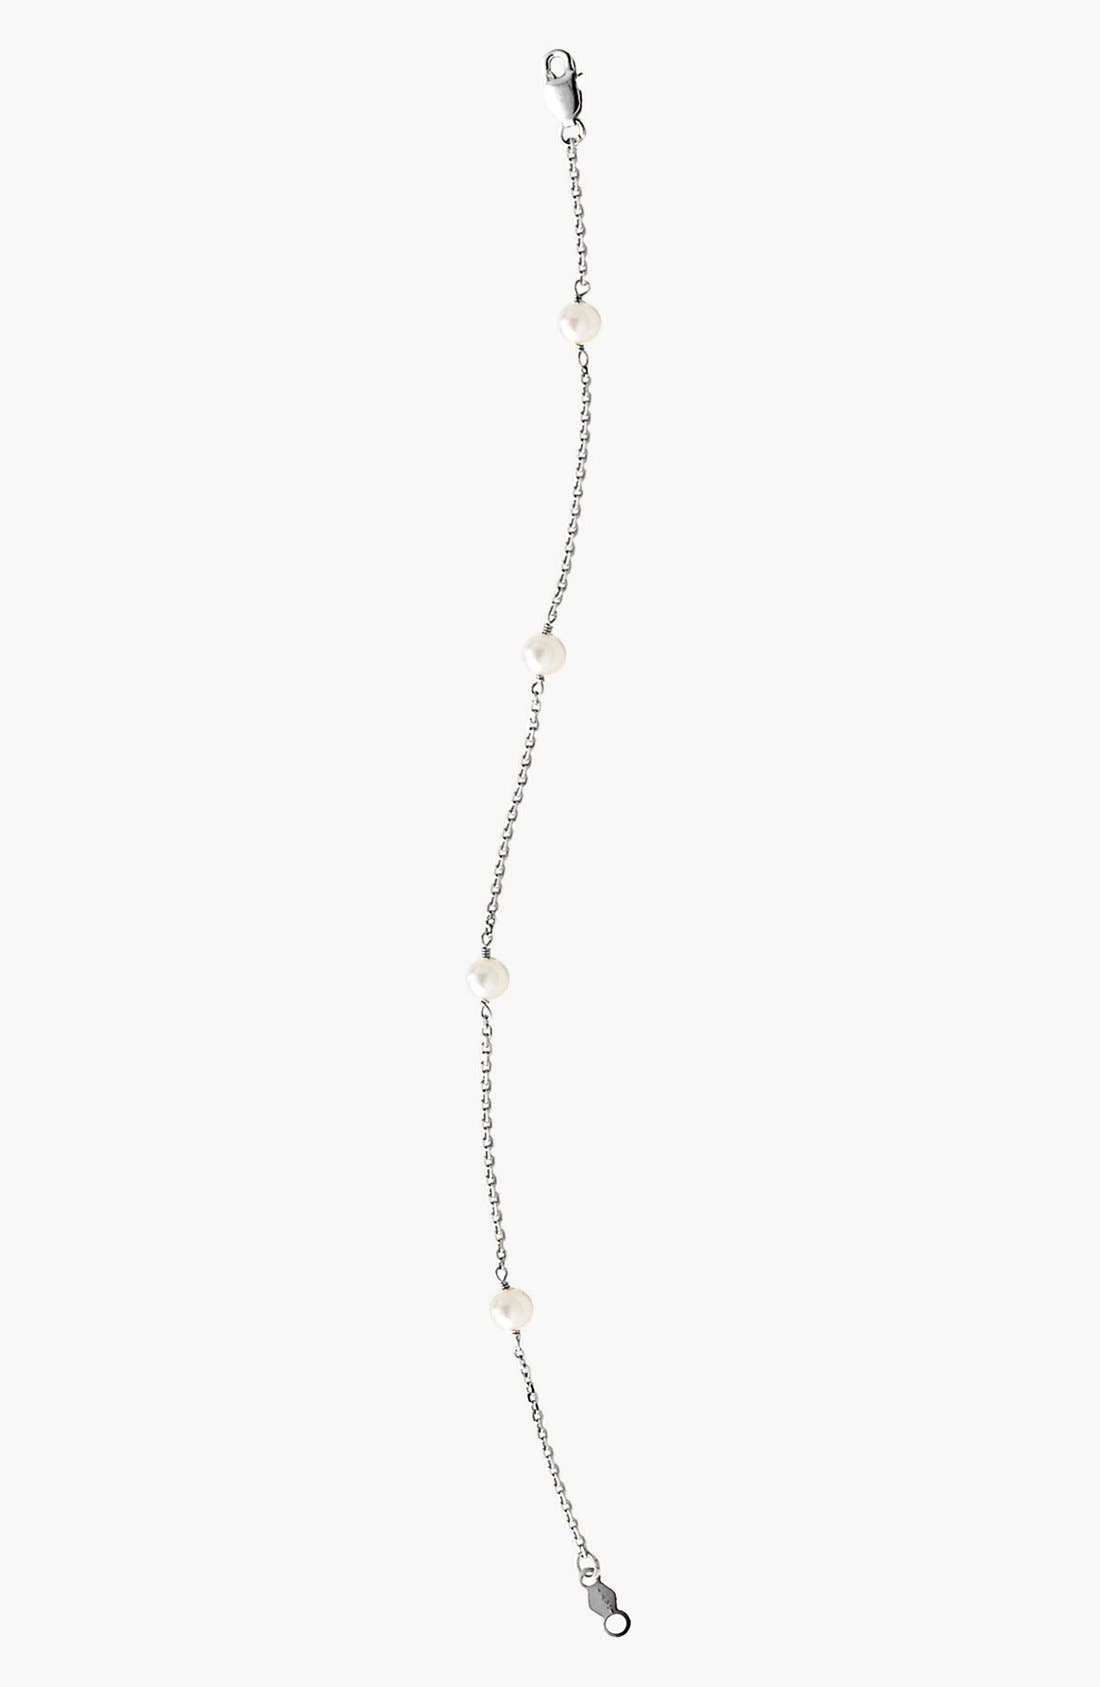 MIGNONETTE 14k White Gold & Cultured Pearl Bracelet